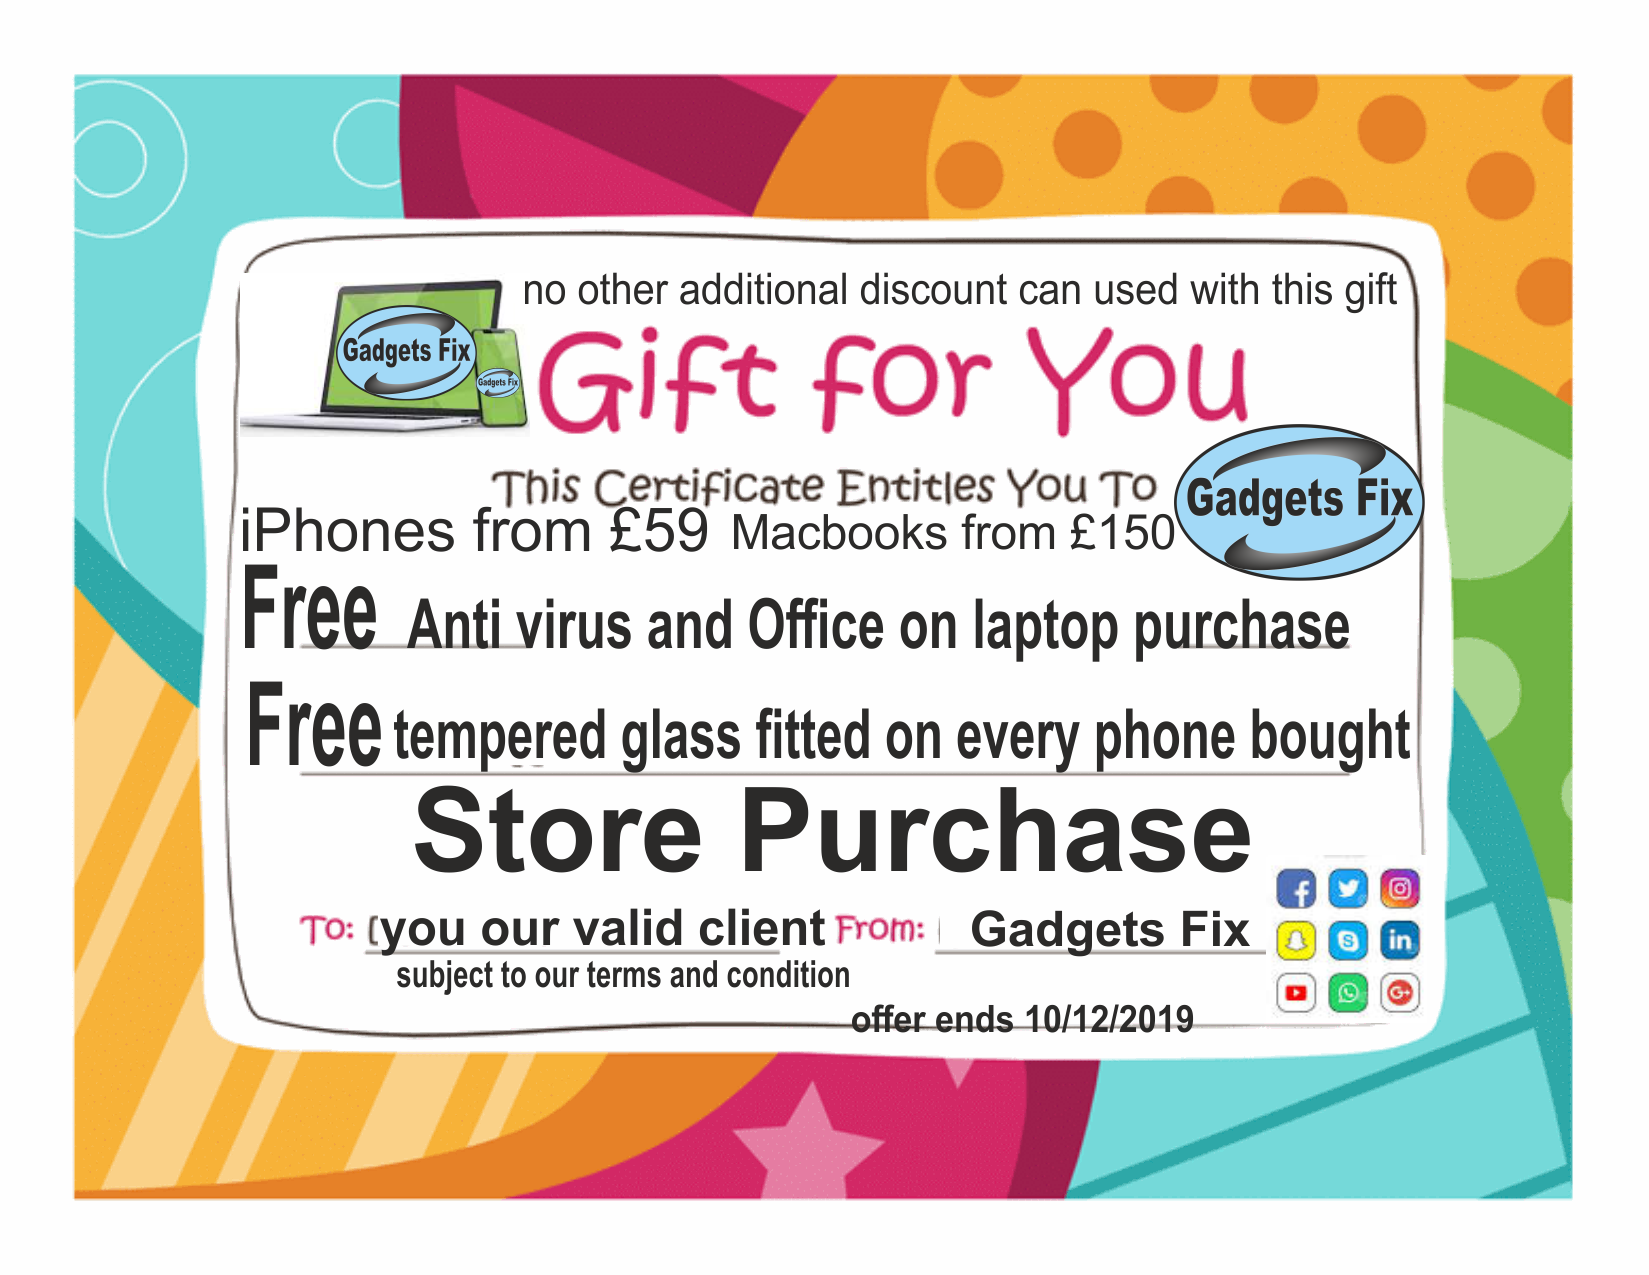 voucher discount Gadgetsfix.com for for free tempered glass and anti virus when buying laptops and phones